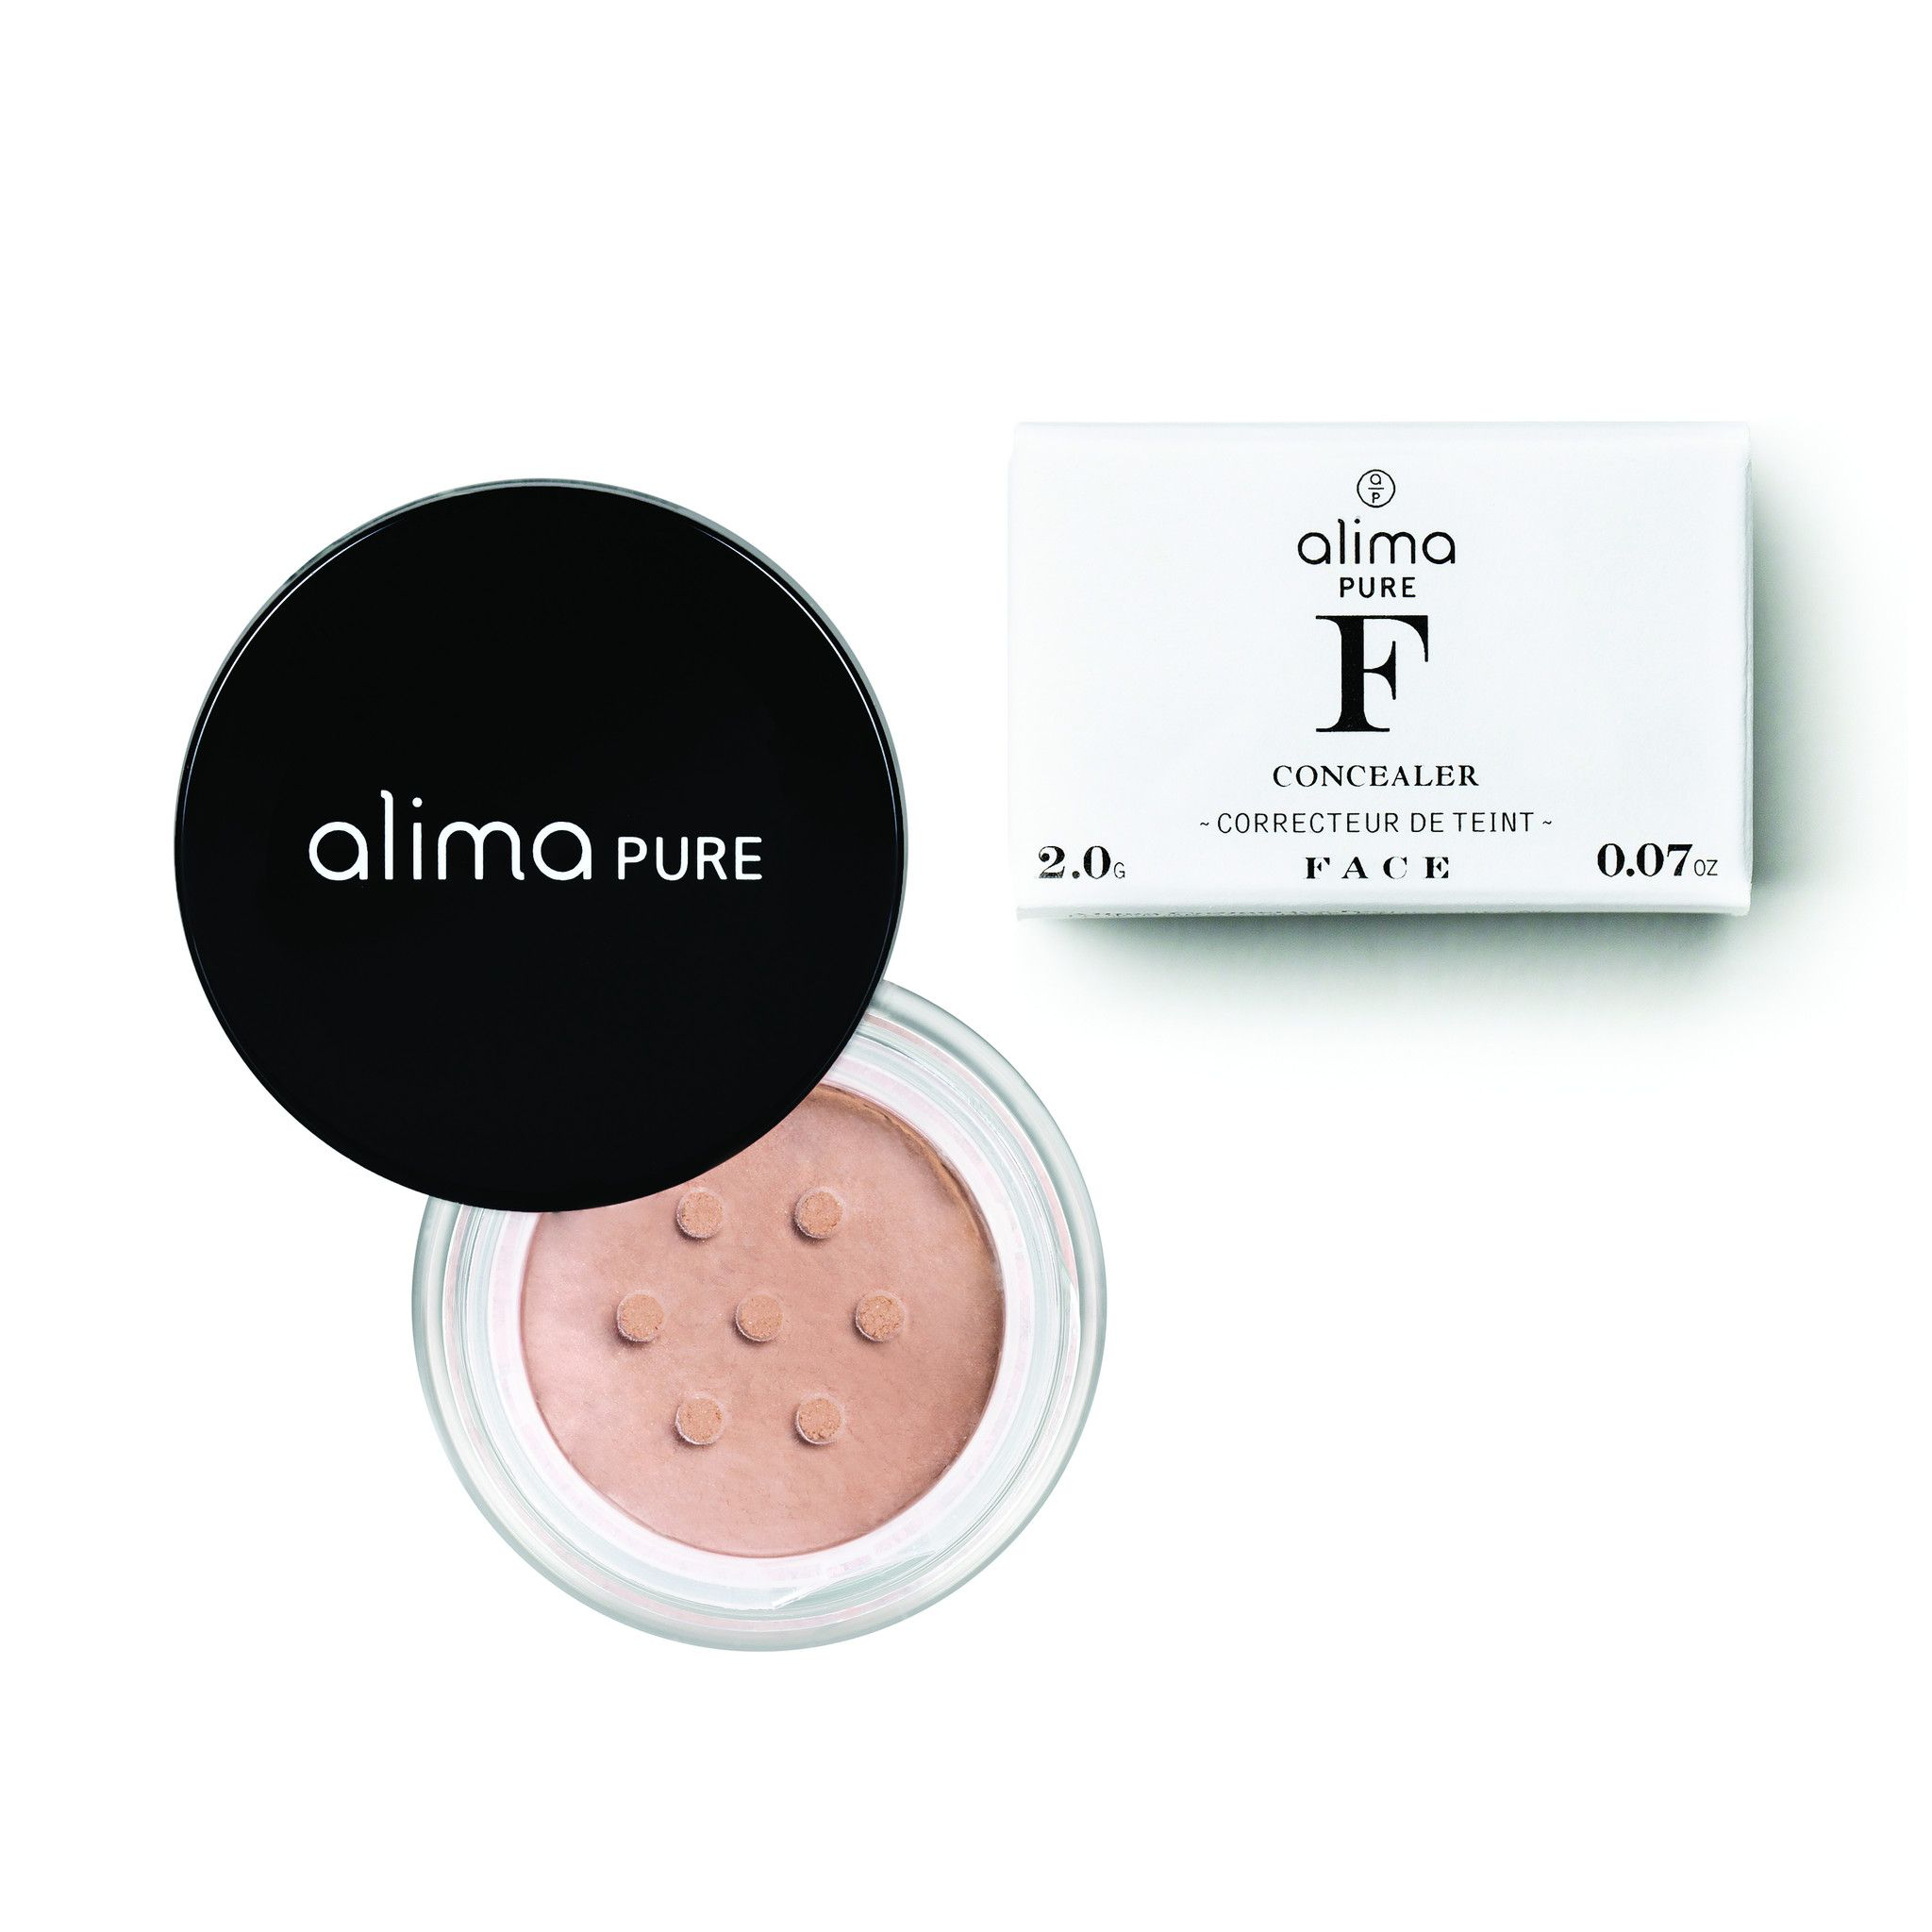 Concealer Concealer, Pure products, Alima pure